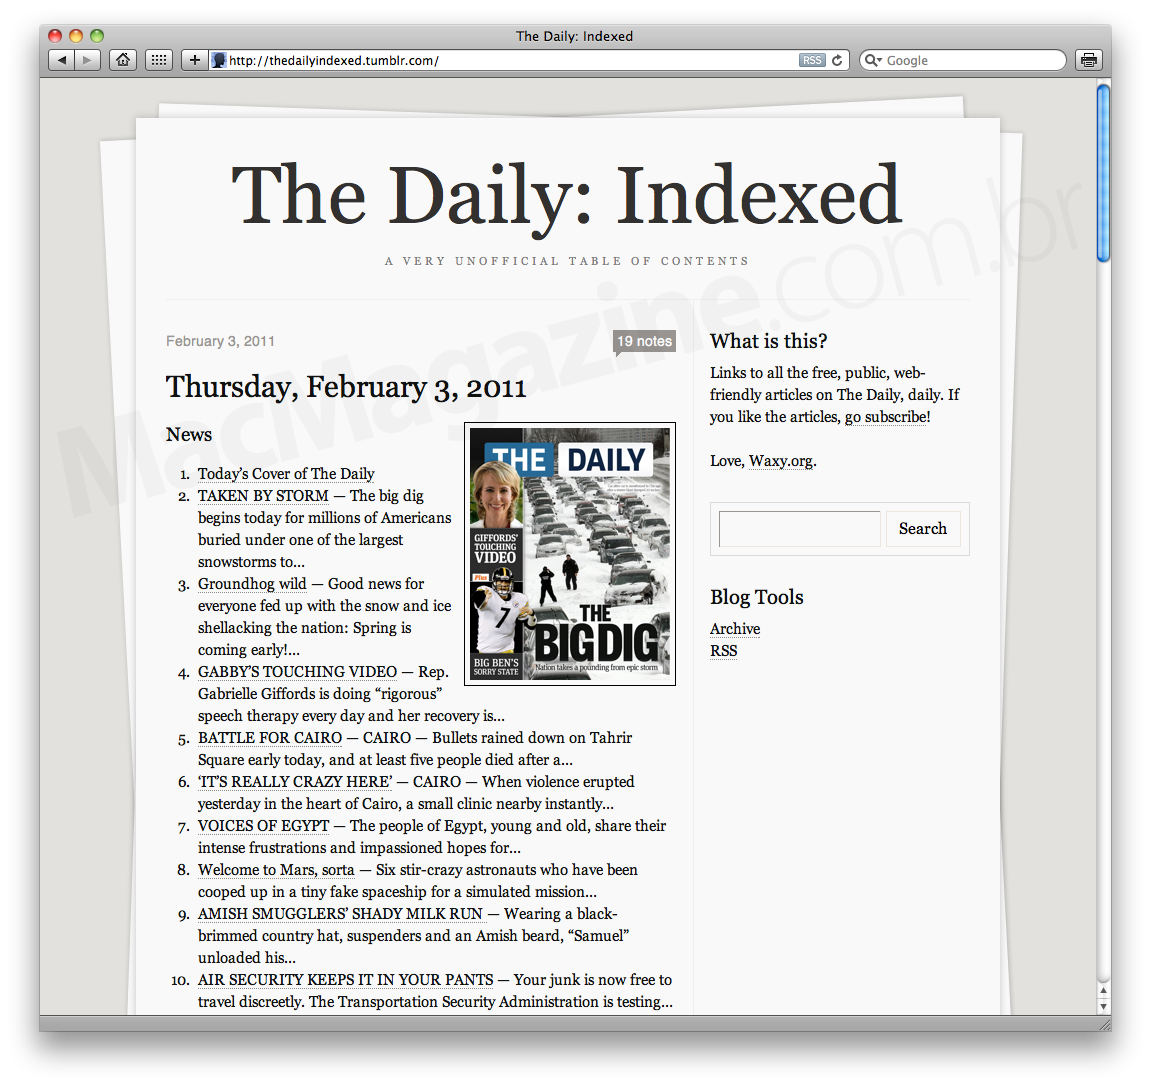 The Daily - Indexed